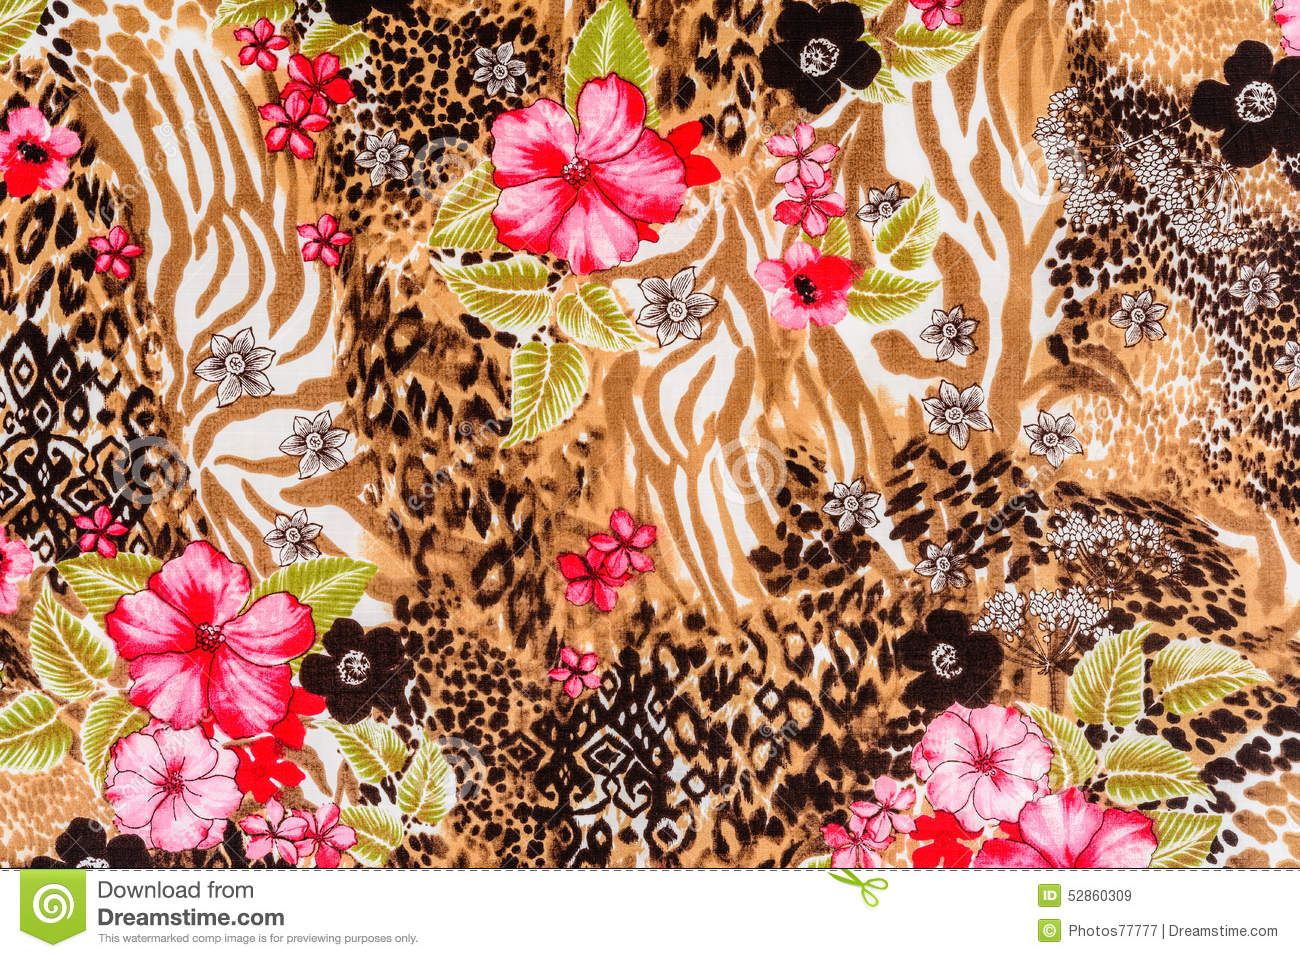 Colorful Animal Print Wallpaper Texture Of Print Fabric Striped Leopard And Flower Stock